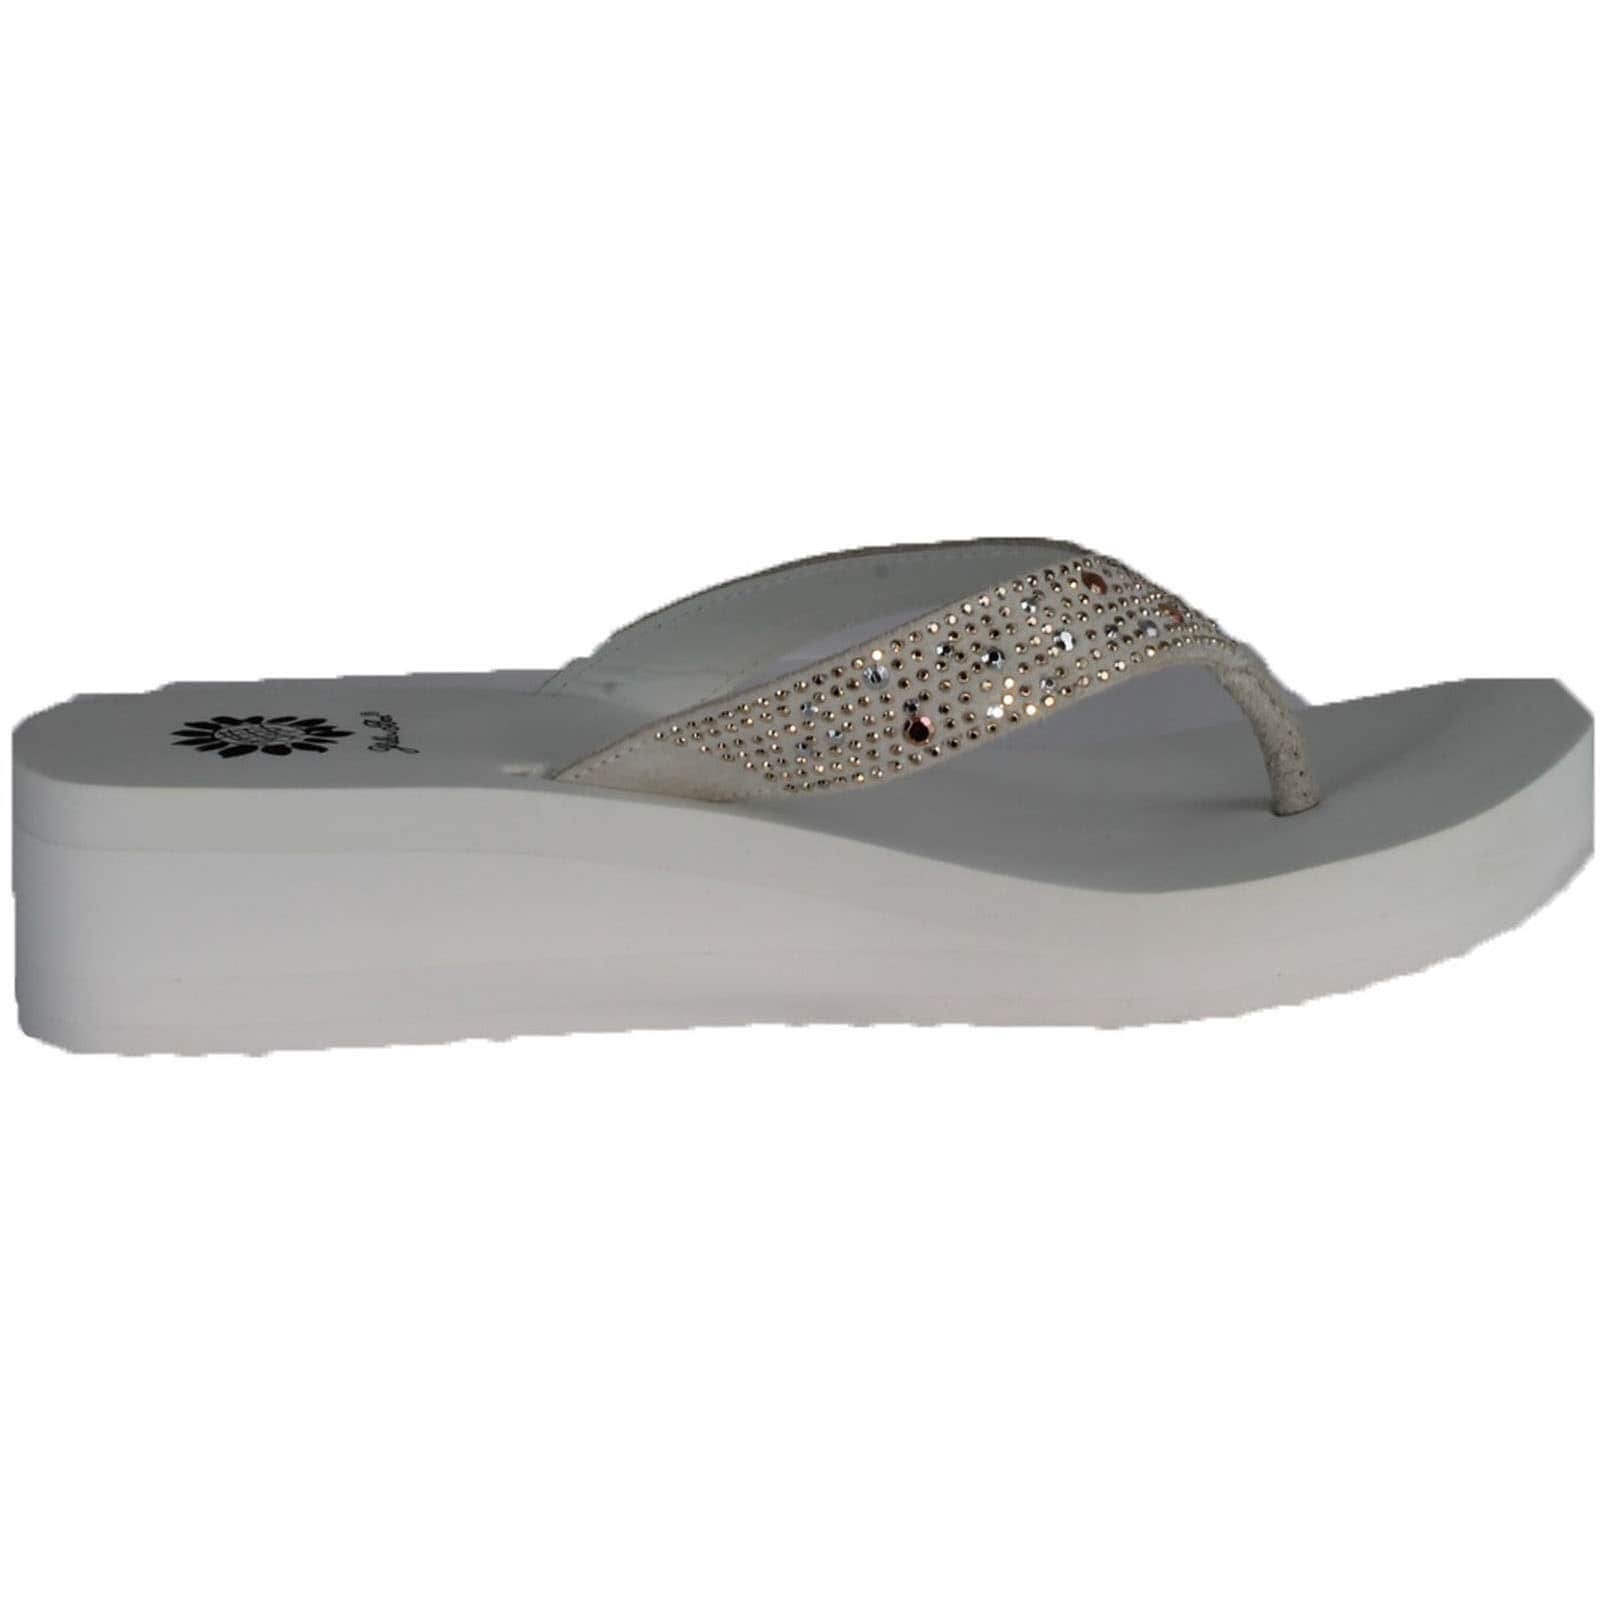 8240b753993585 Shop Yellow Box Womens Africa Flip Flop Sandals - Free Shipping On Orders  Over  45 - Overstock.com - 14312474